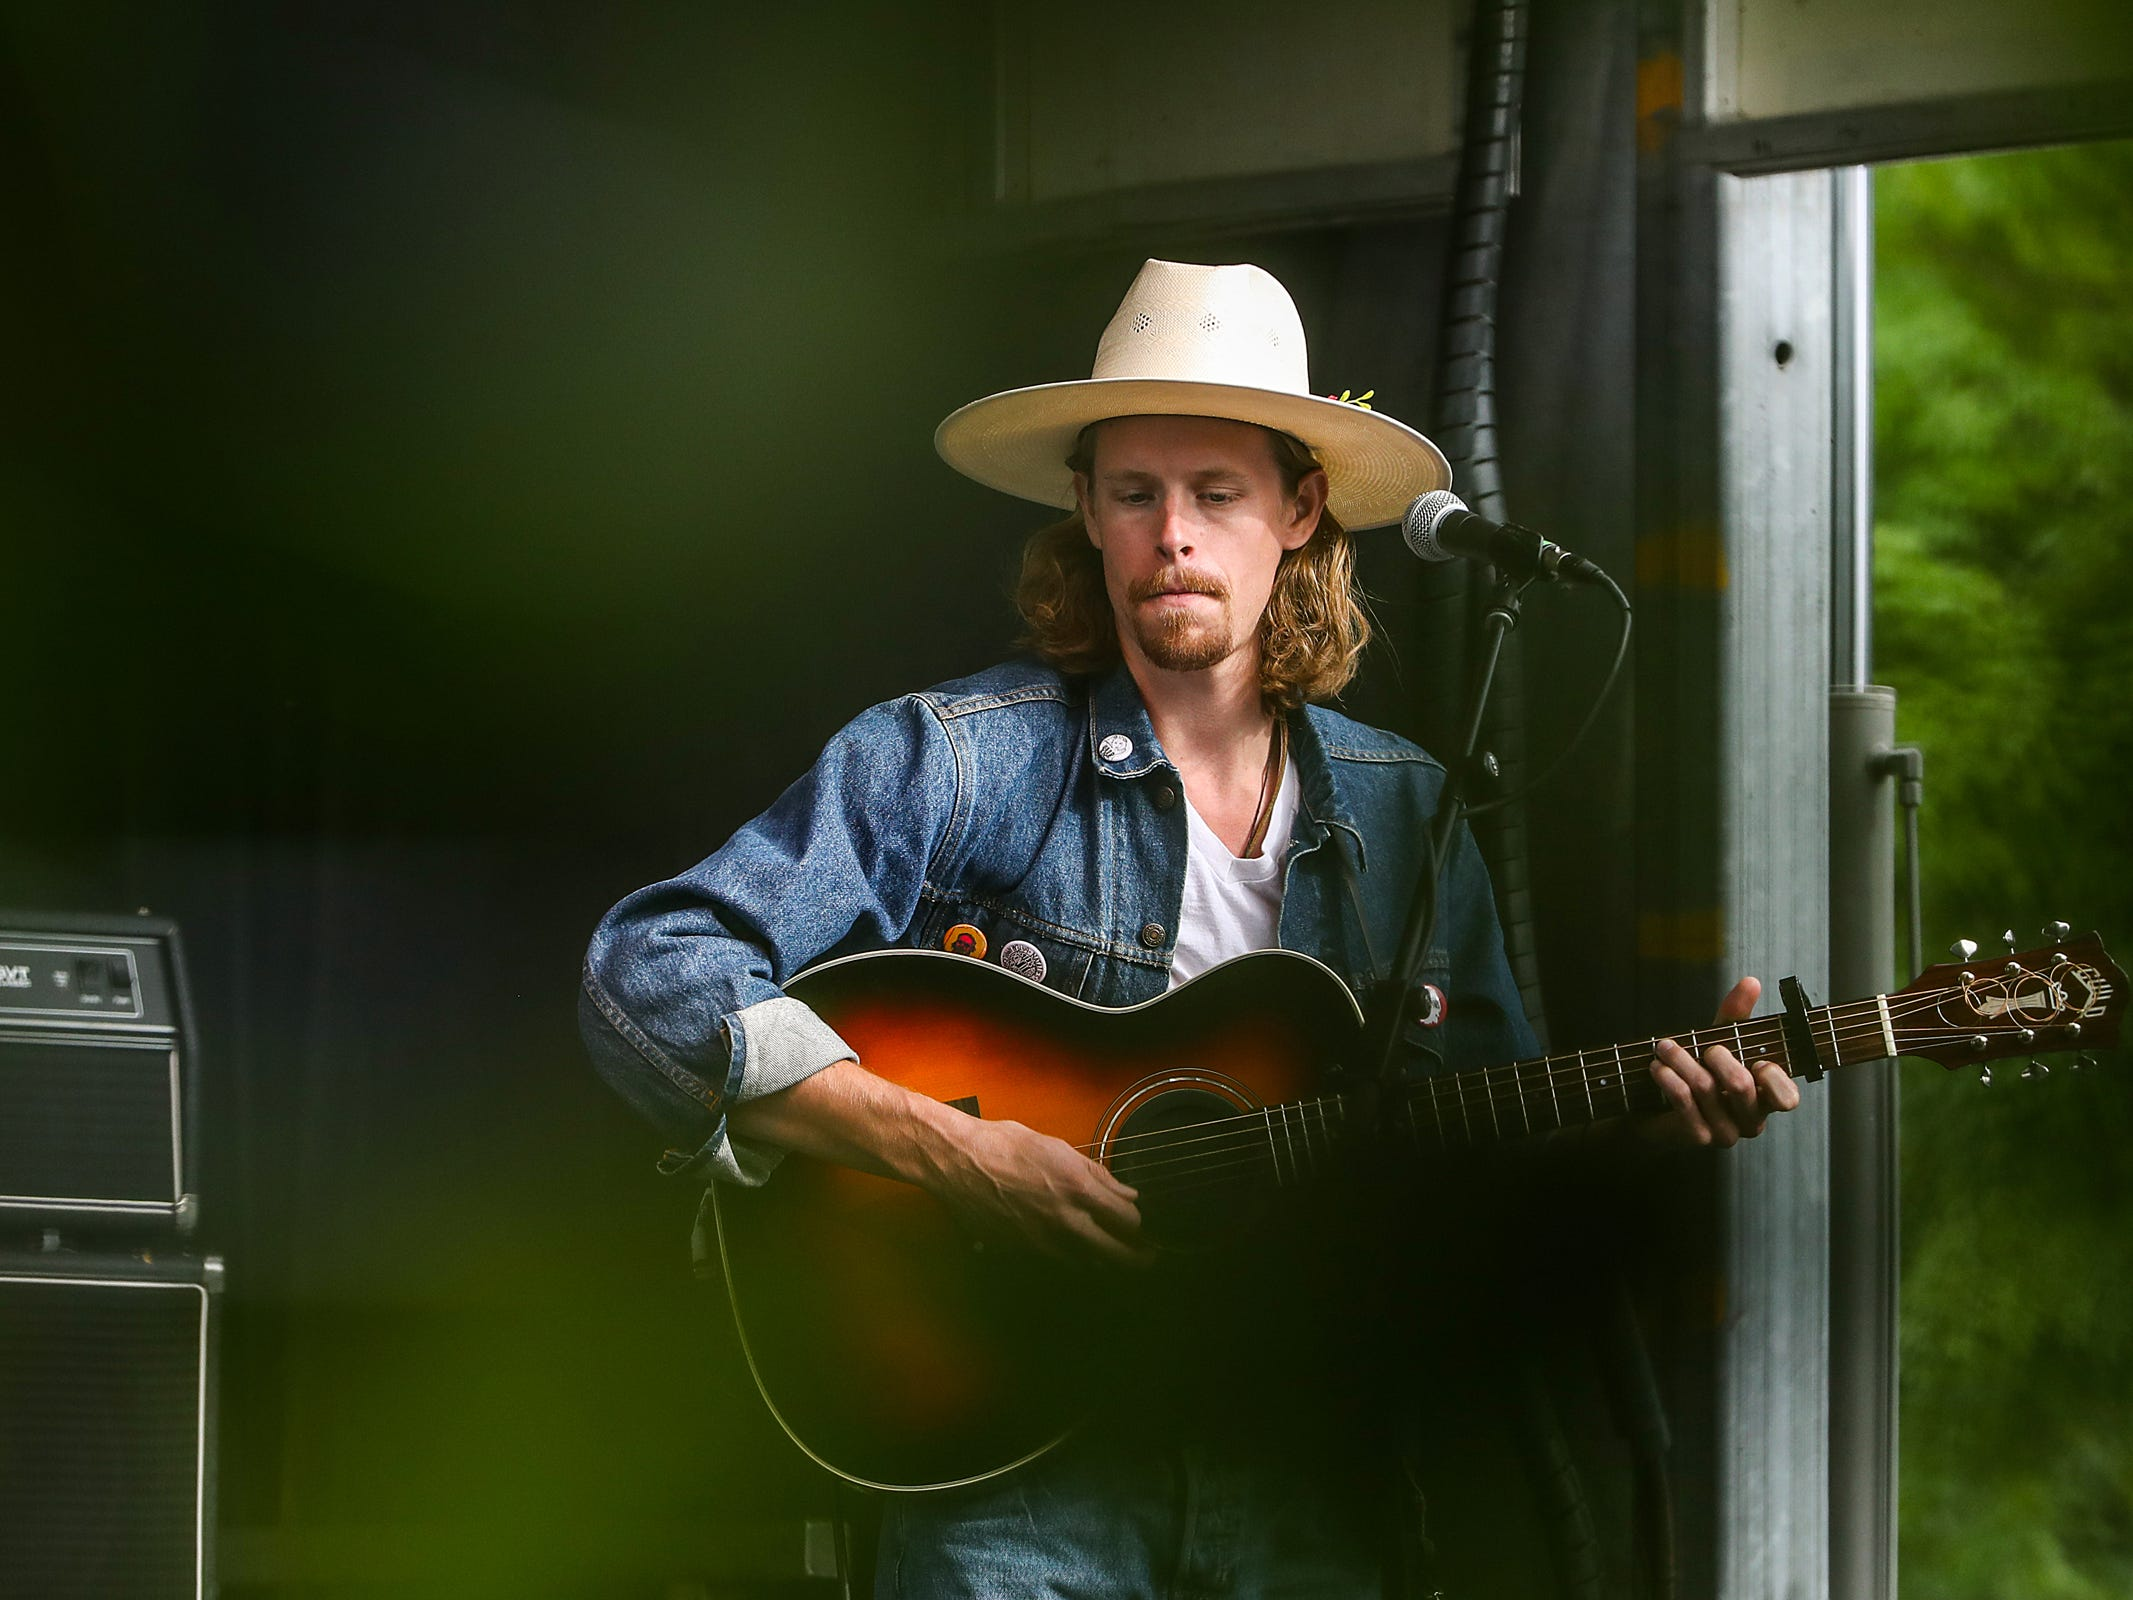 Vocalist and guitarist Taylor Meier performs with Ohio-based folk group Caamp at the inaugural Holler on the Hill music festival at Garfield Park in Indianapolis, Saturday, Sept. 22, 2018.